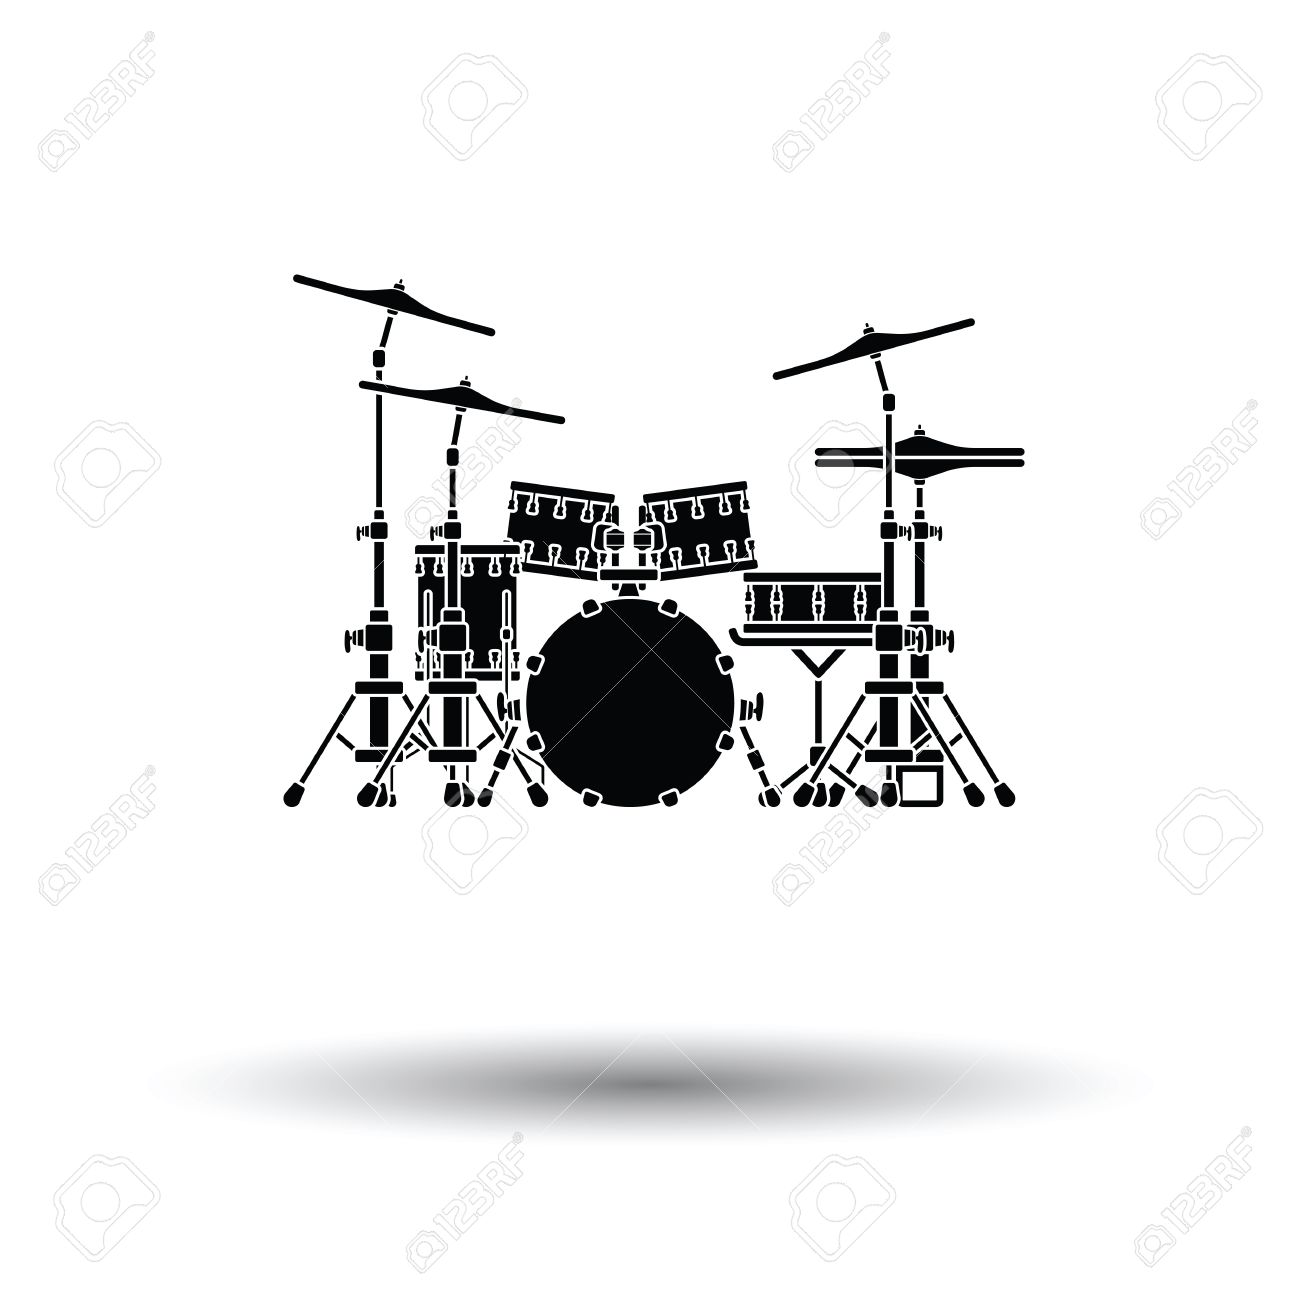 hight resolution of drum set icon white background with shadow design vector illustration stock vector